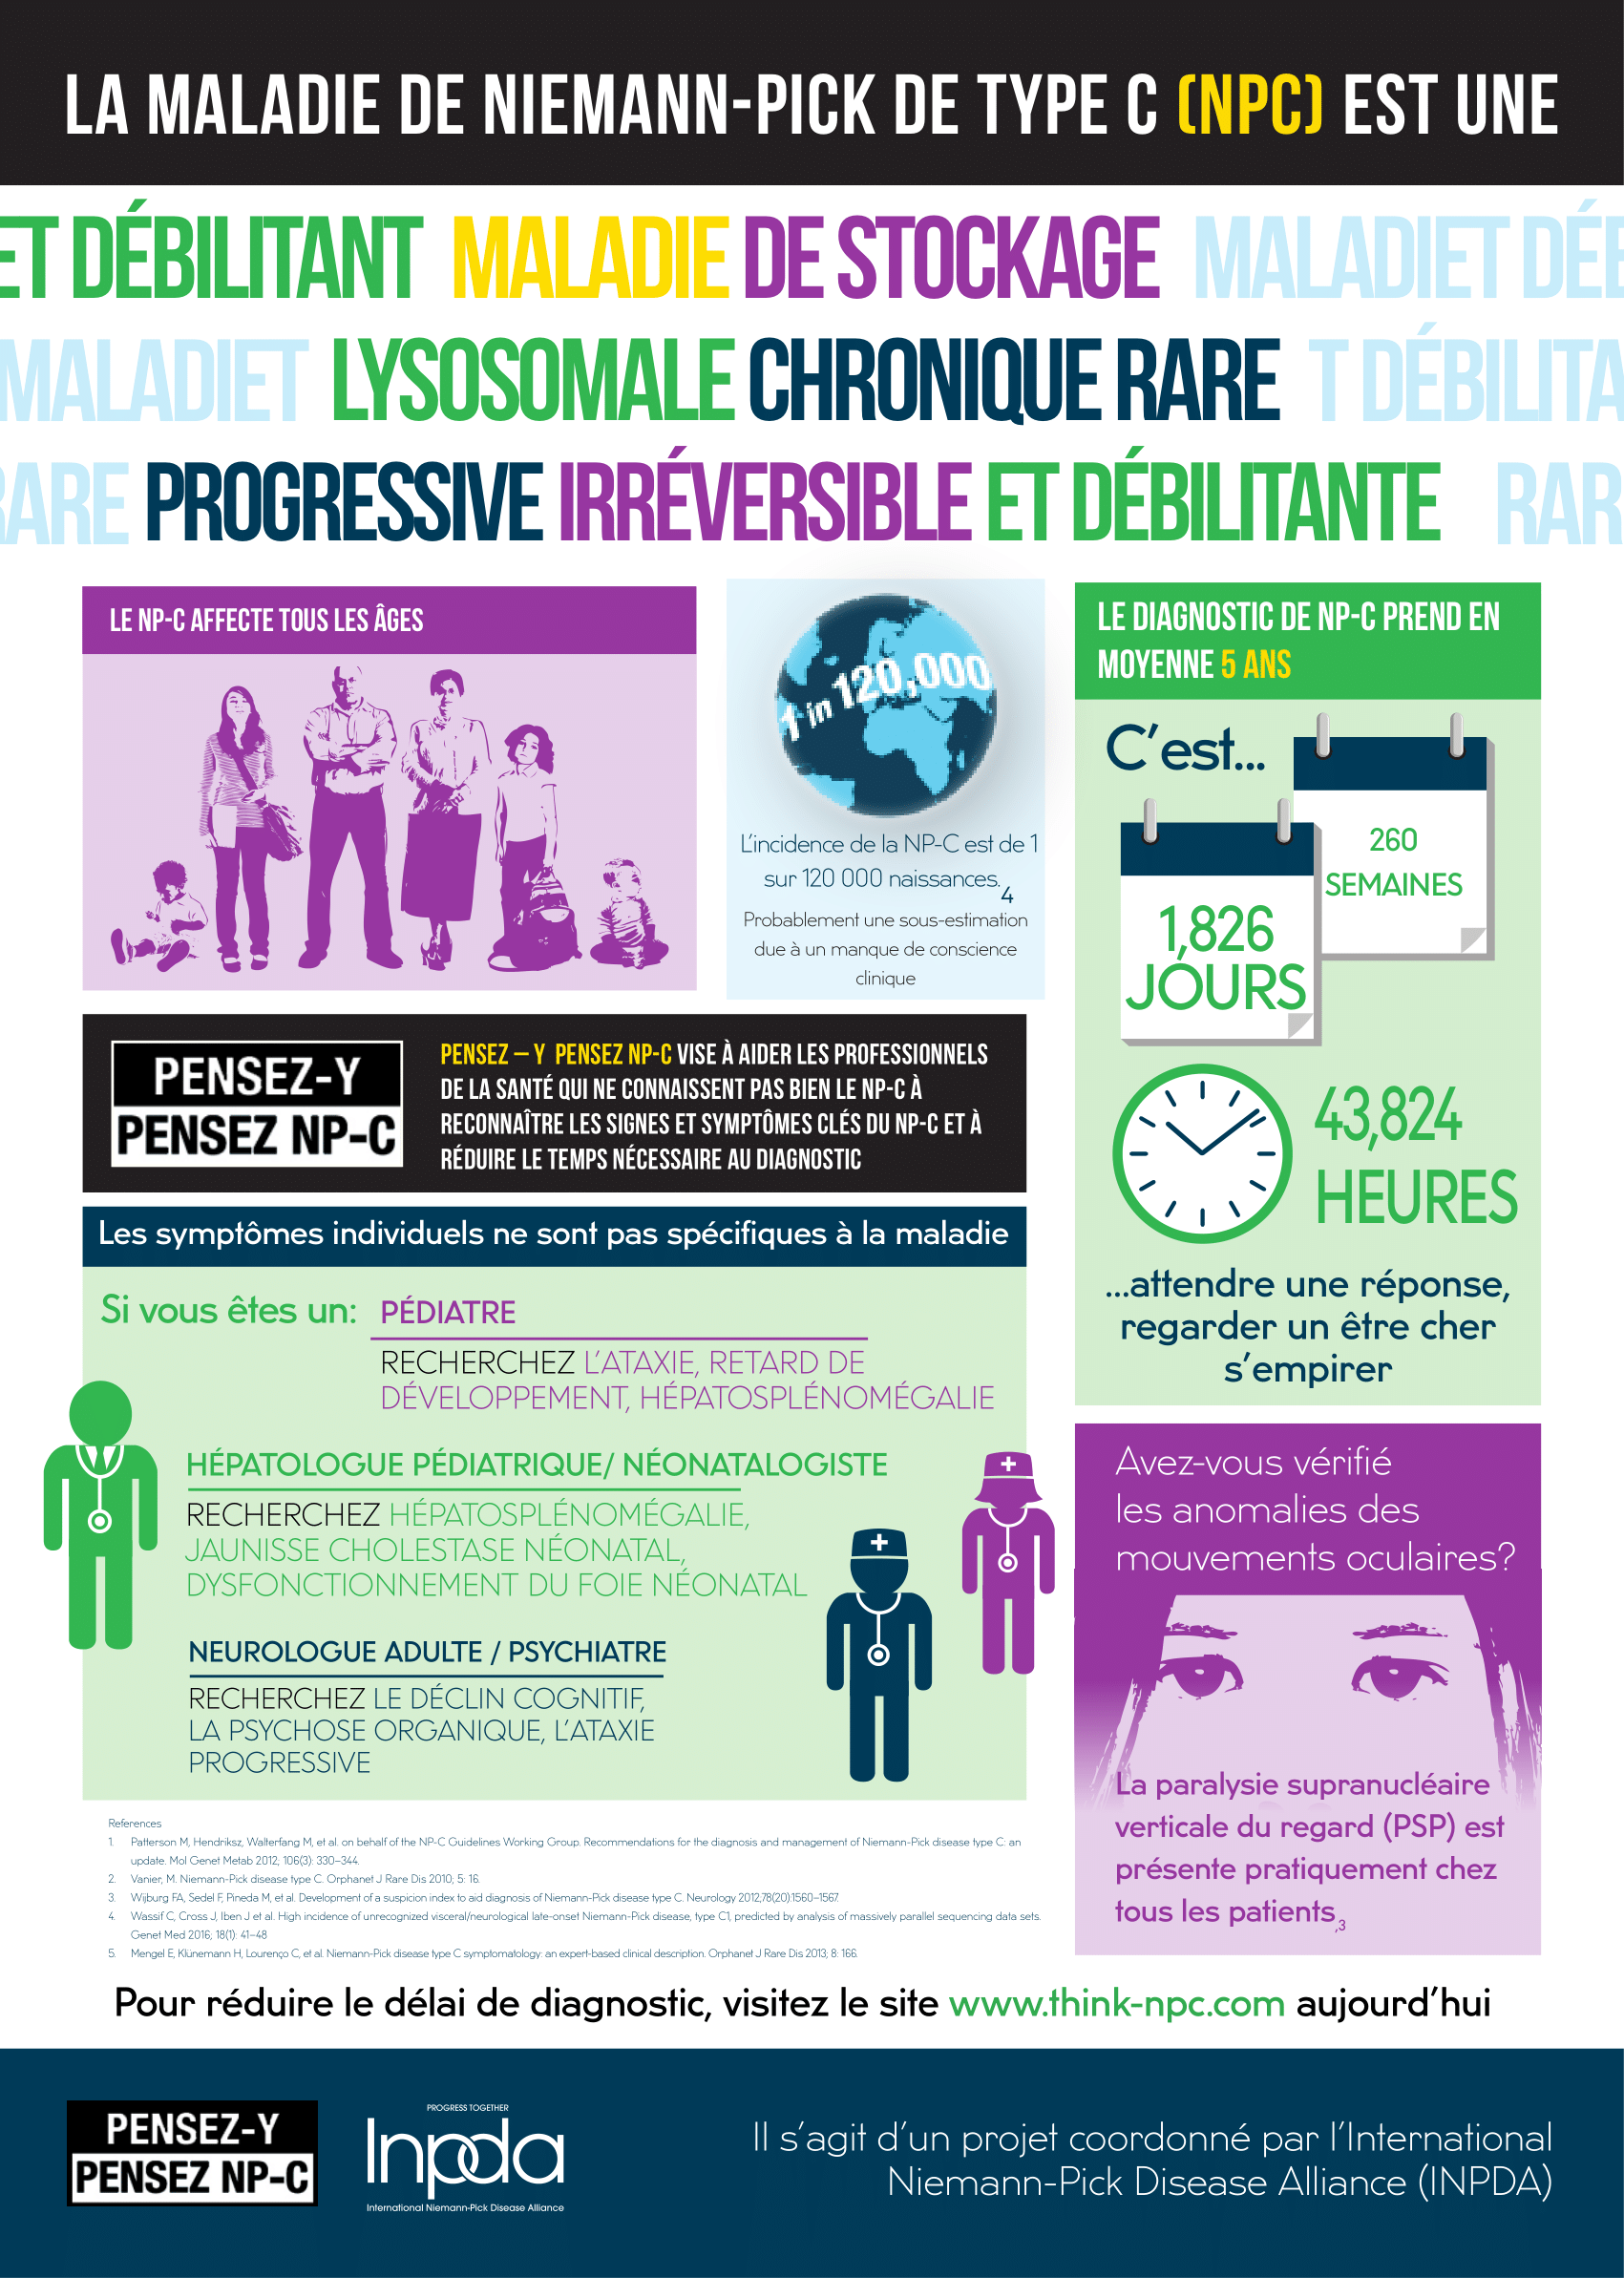 AA6767_NP-C_Infographic_Oct_2018 FRENCH